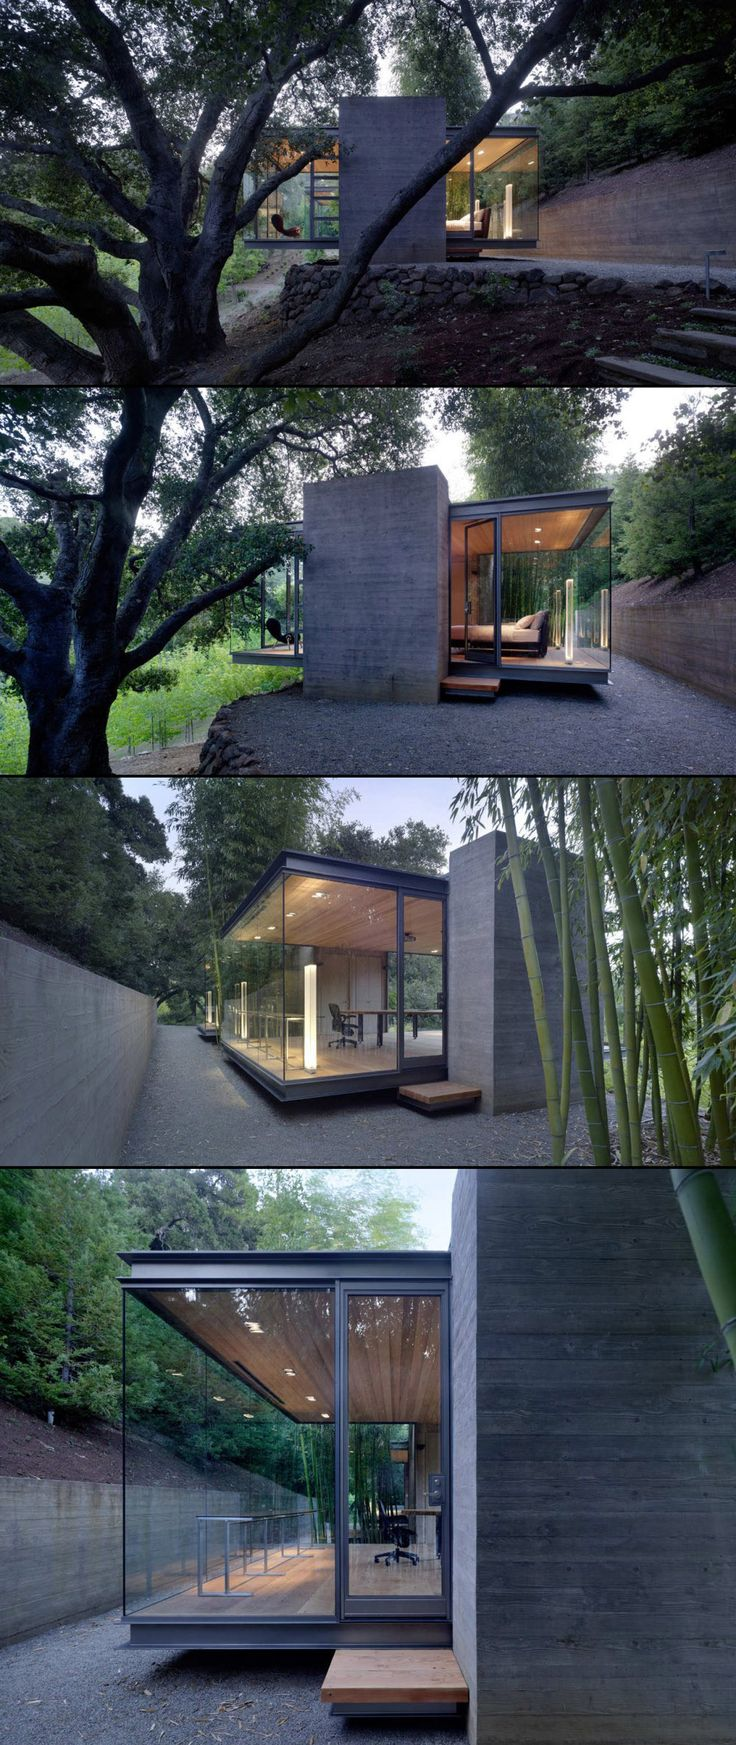 Tea House by Swatt | Miers Architects. Follow Nordarcon on Instagram, Facebook & Twitter.